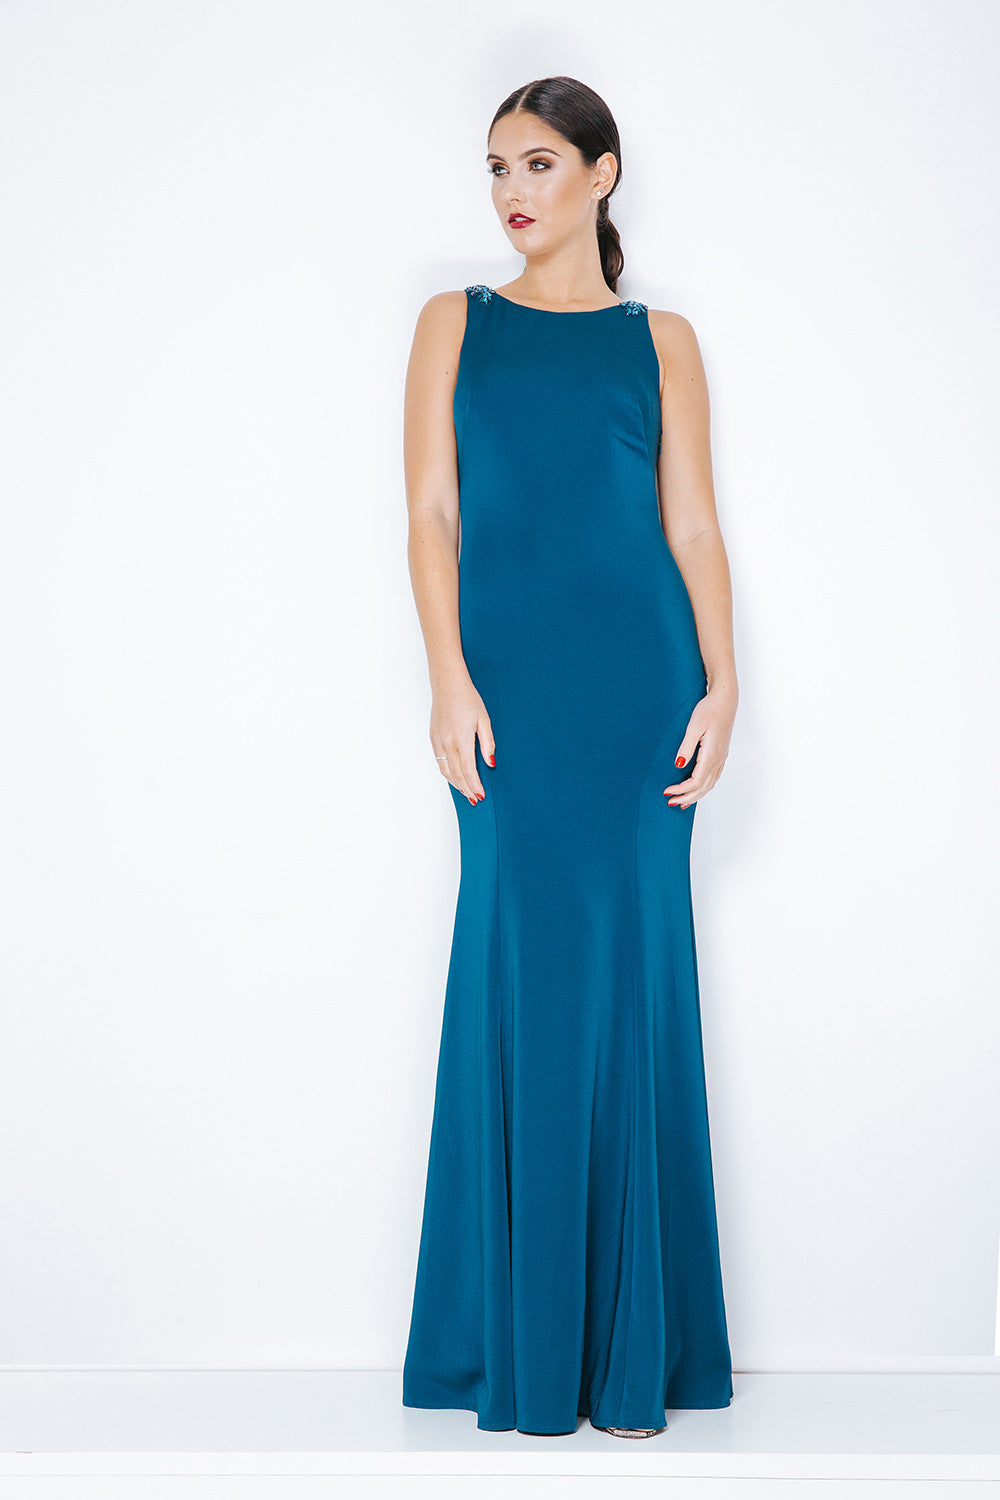 Rue Burgundy Evening Gown - Gissings Boutique